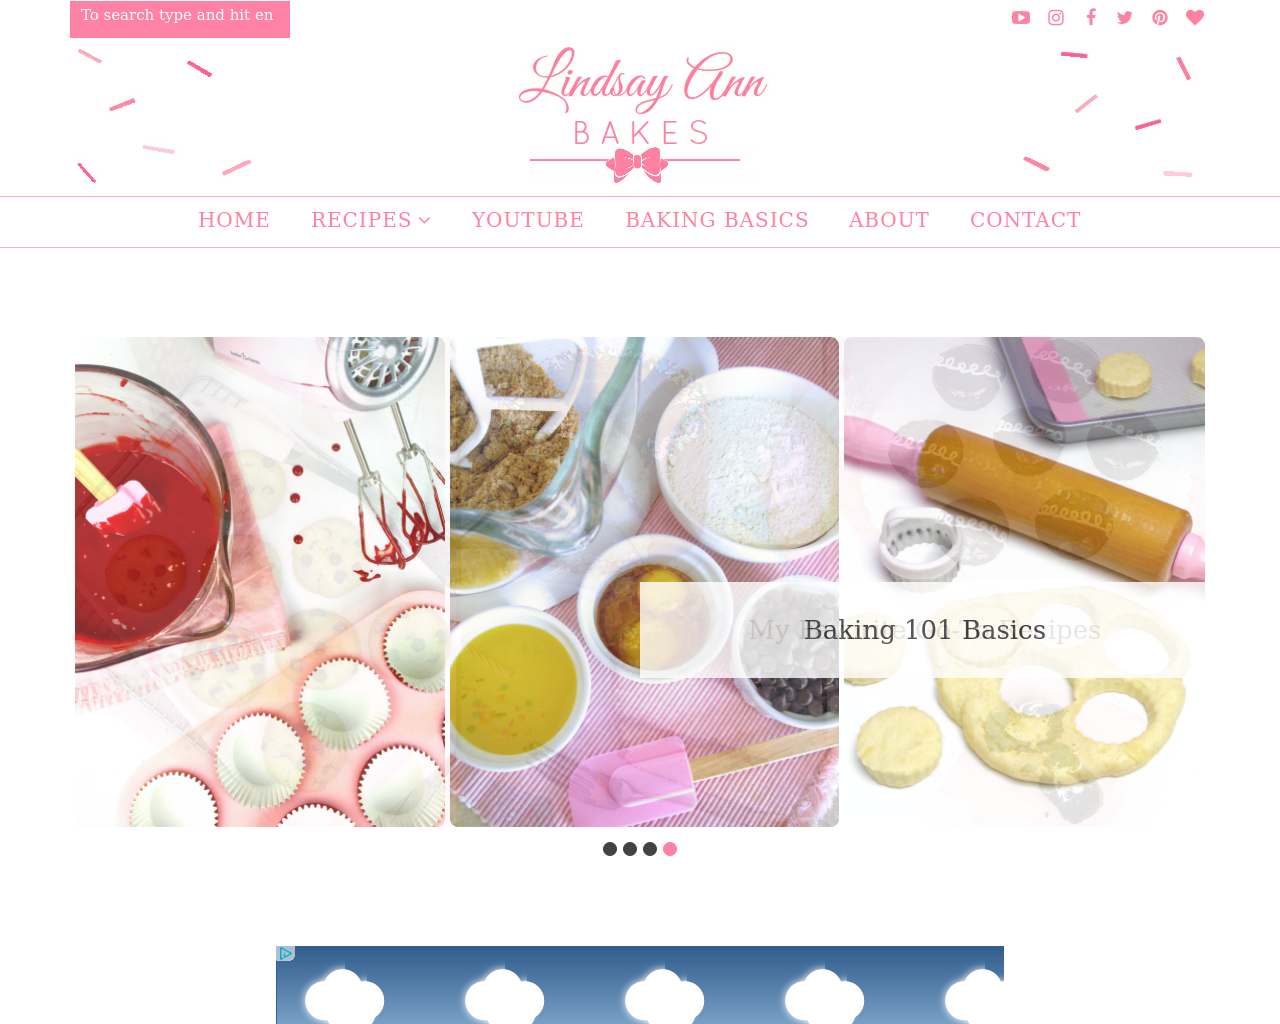 Lindsay-Ann-BAKES-Advertising-Reviews-Pricing